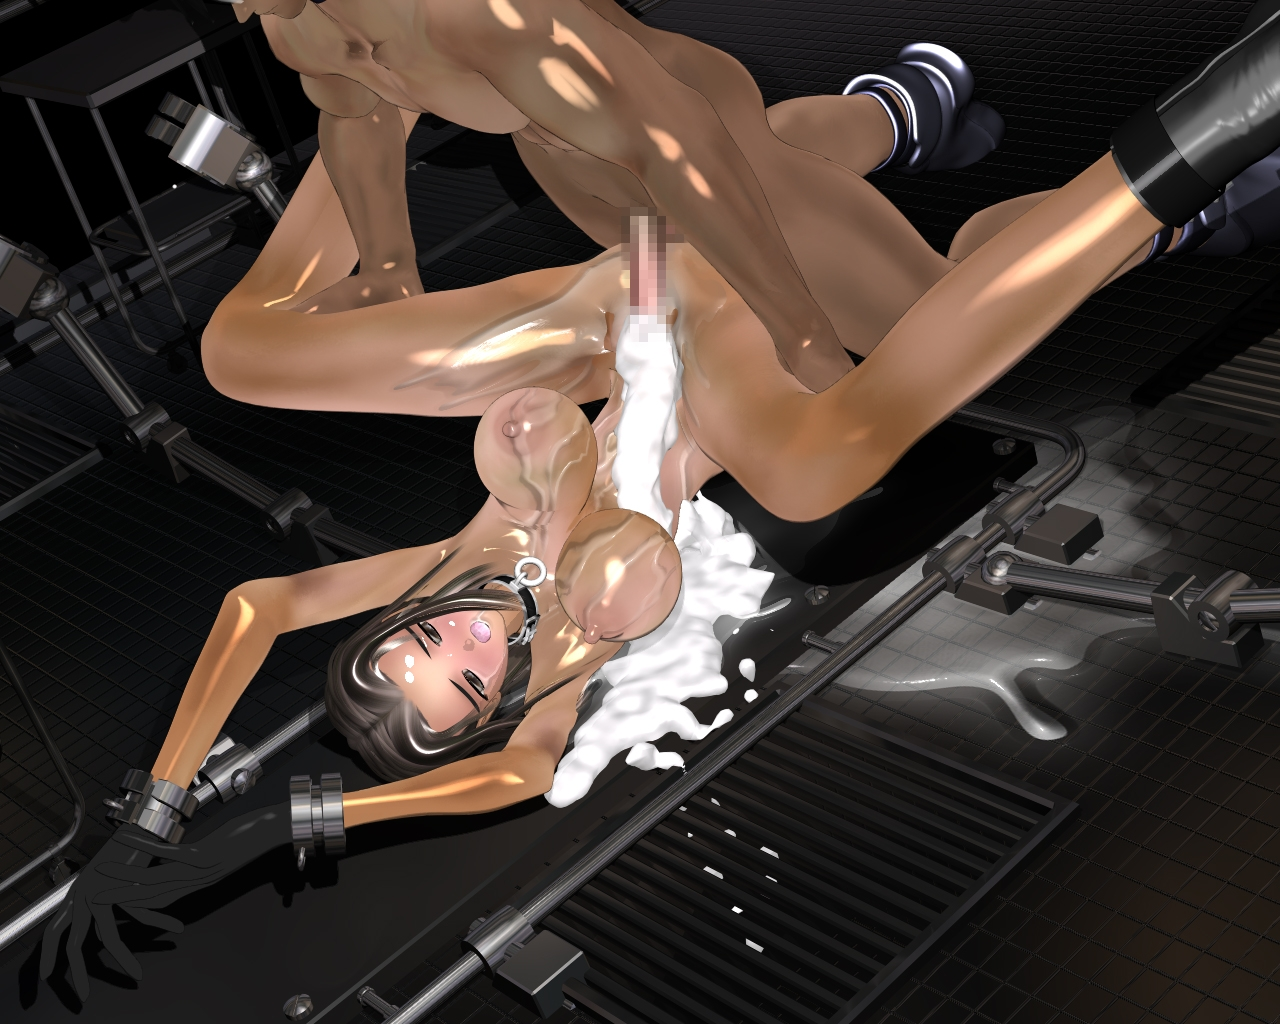 Virtual sex rpg sex kinky model